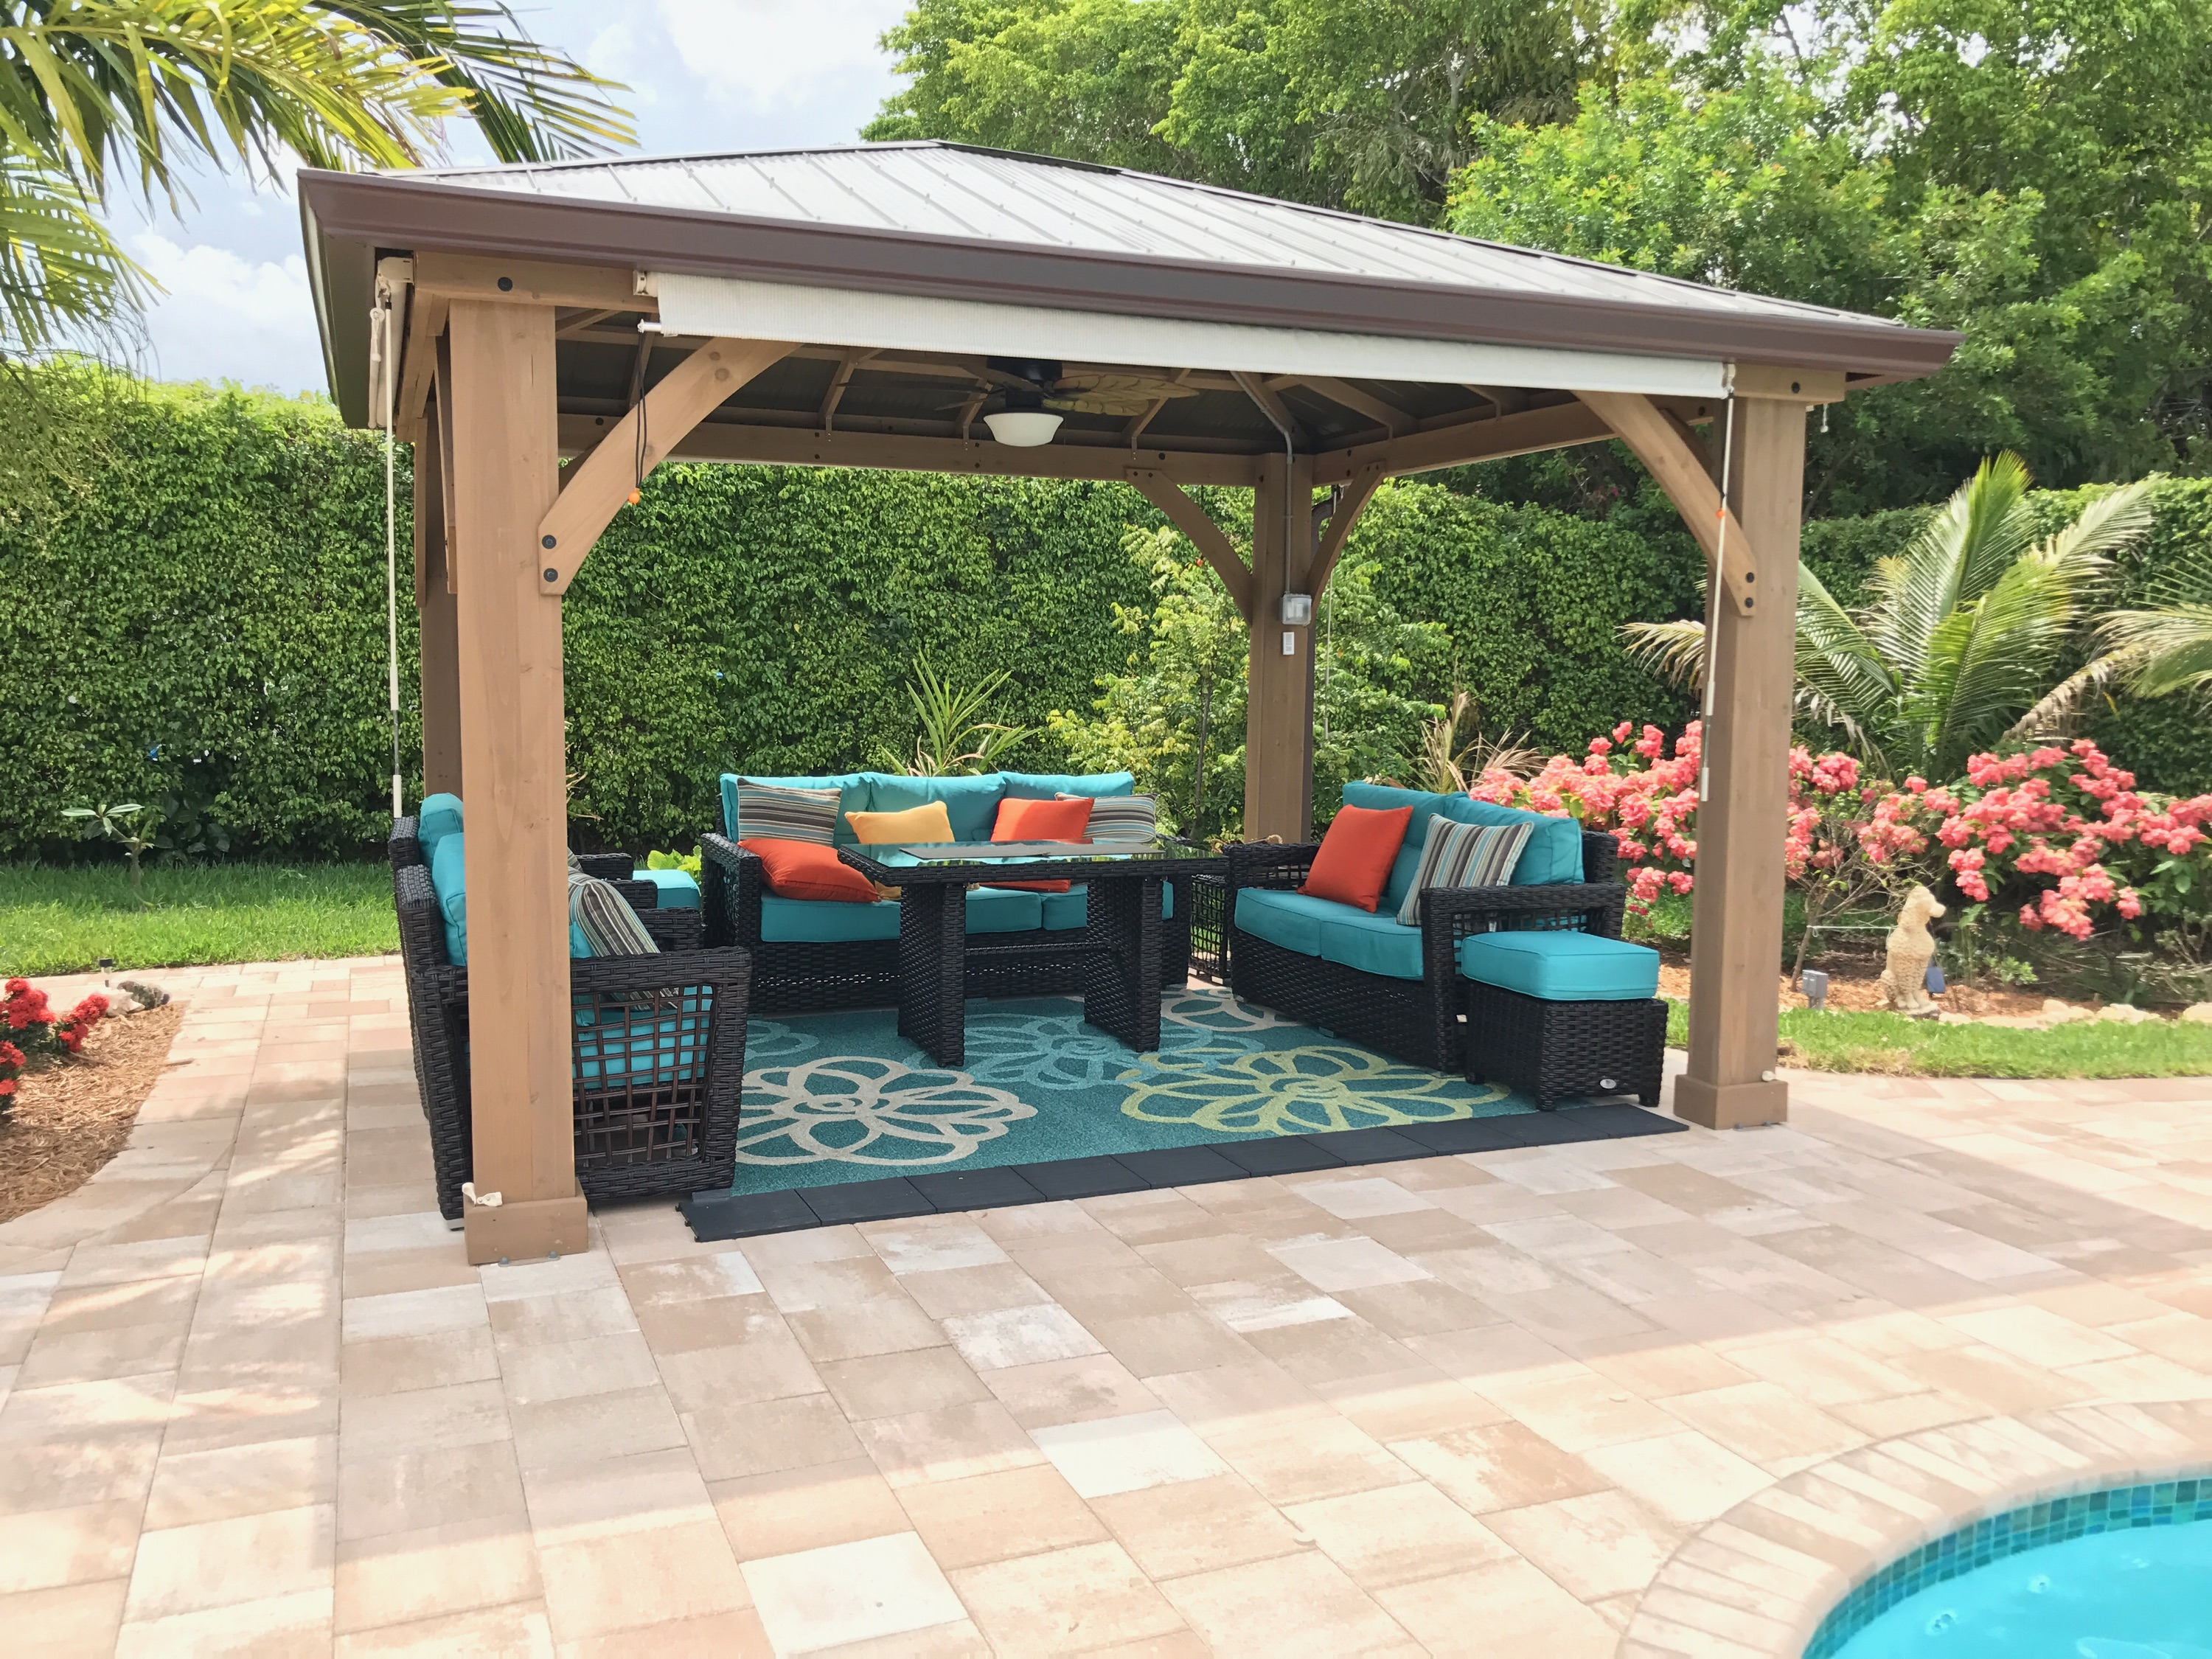 outdoor patio emporium | outdoor patio wicker furniture PEFFJAP